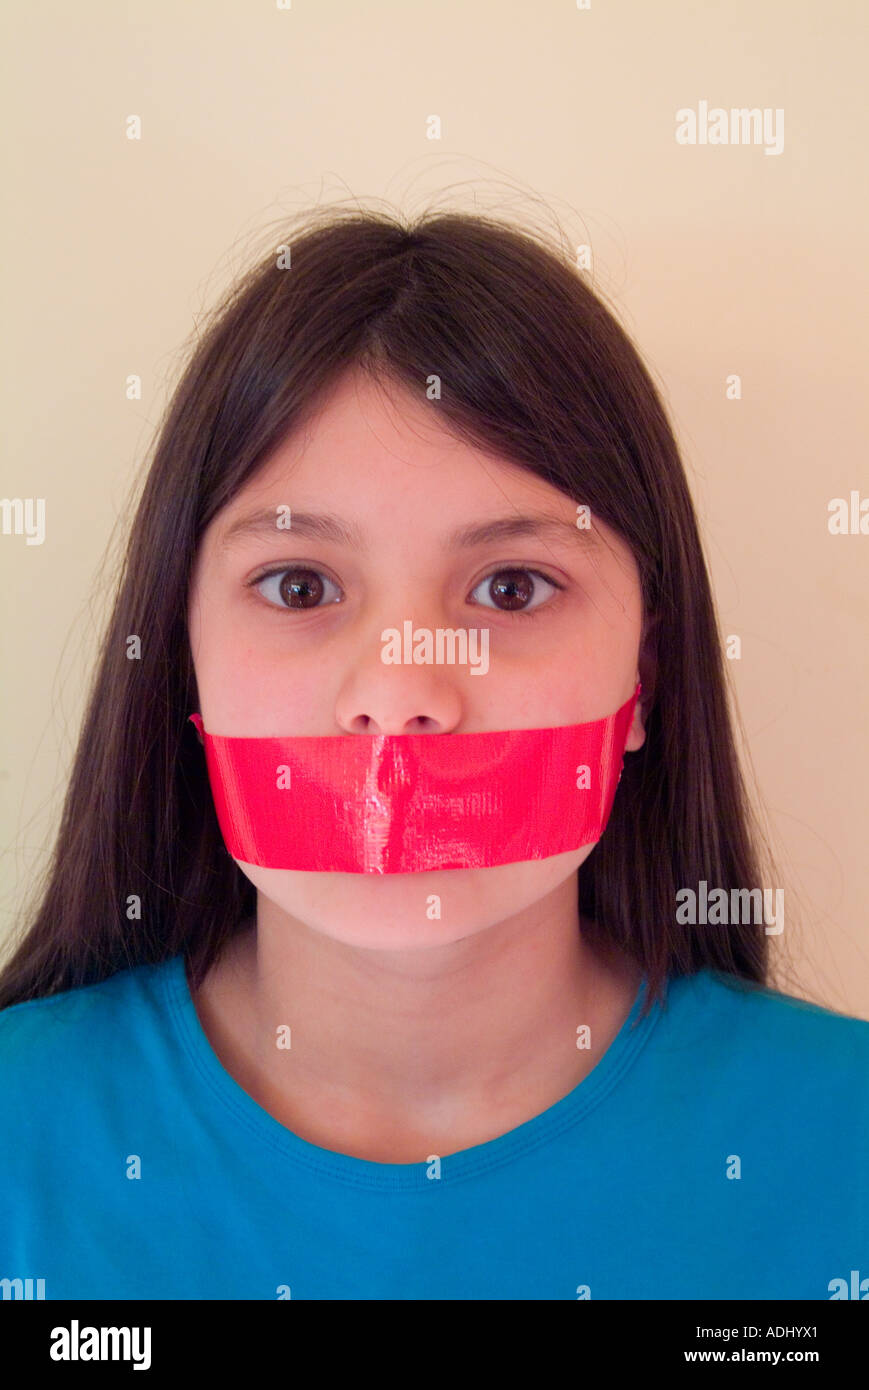 Young Girl With Tape Over Her Mouth Stock Image